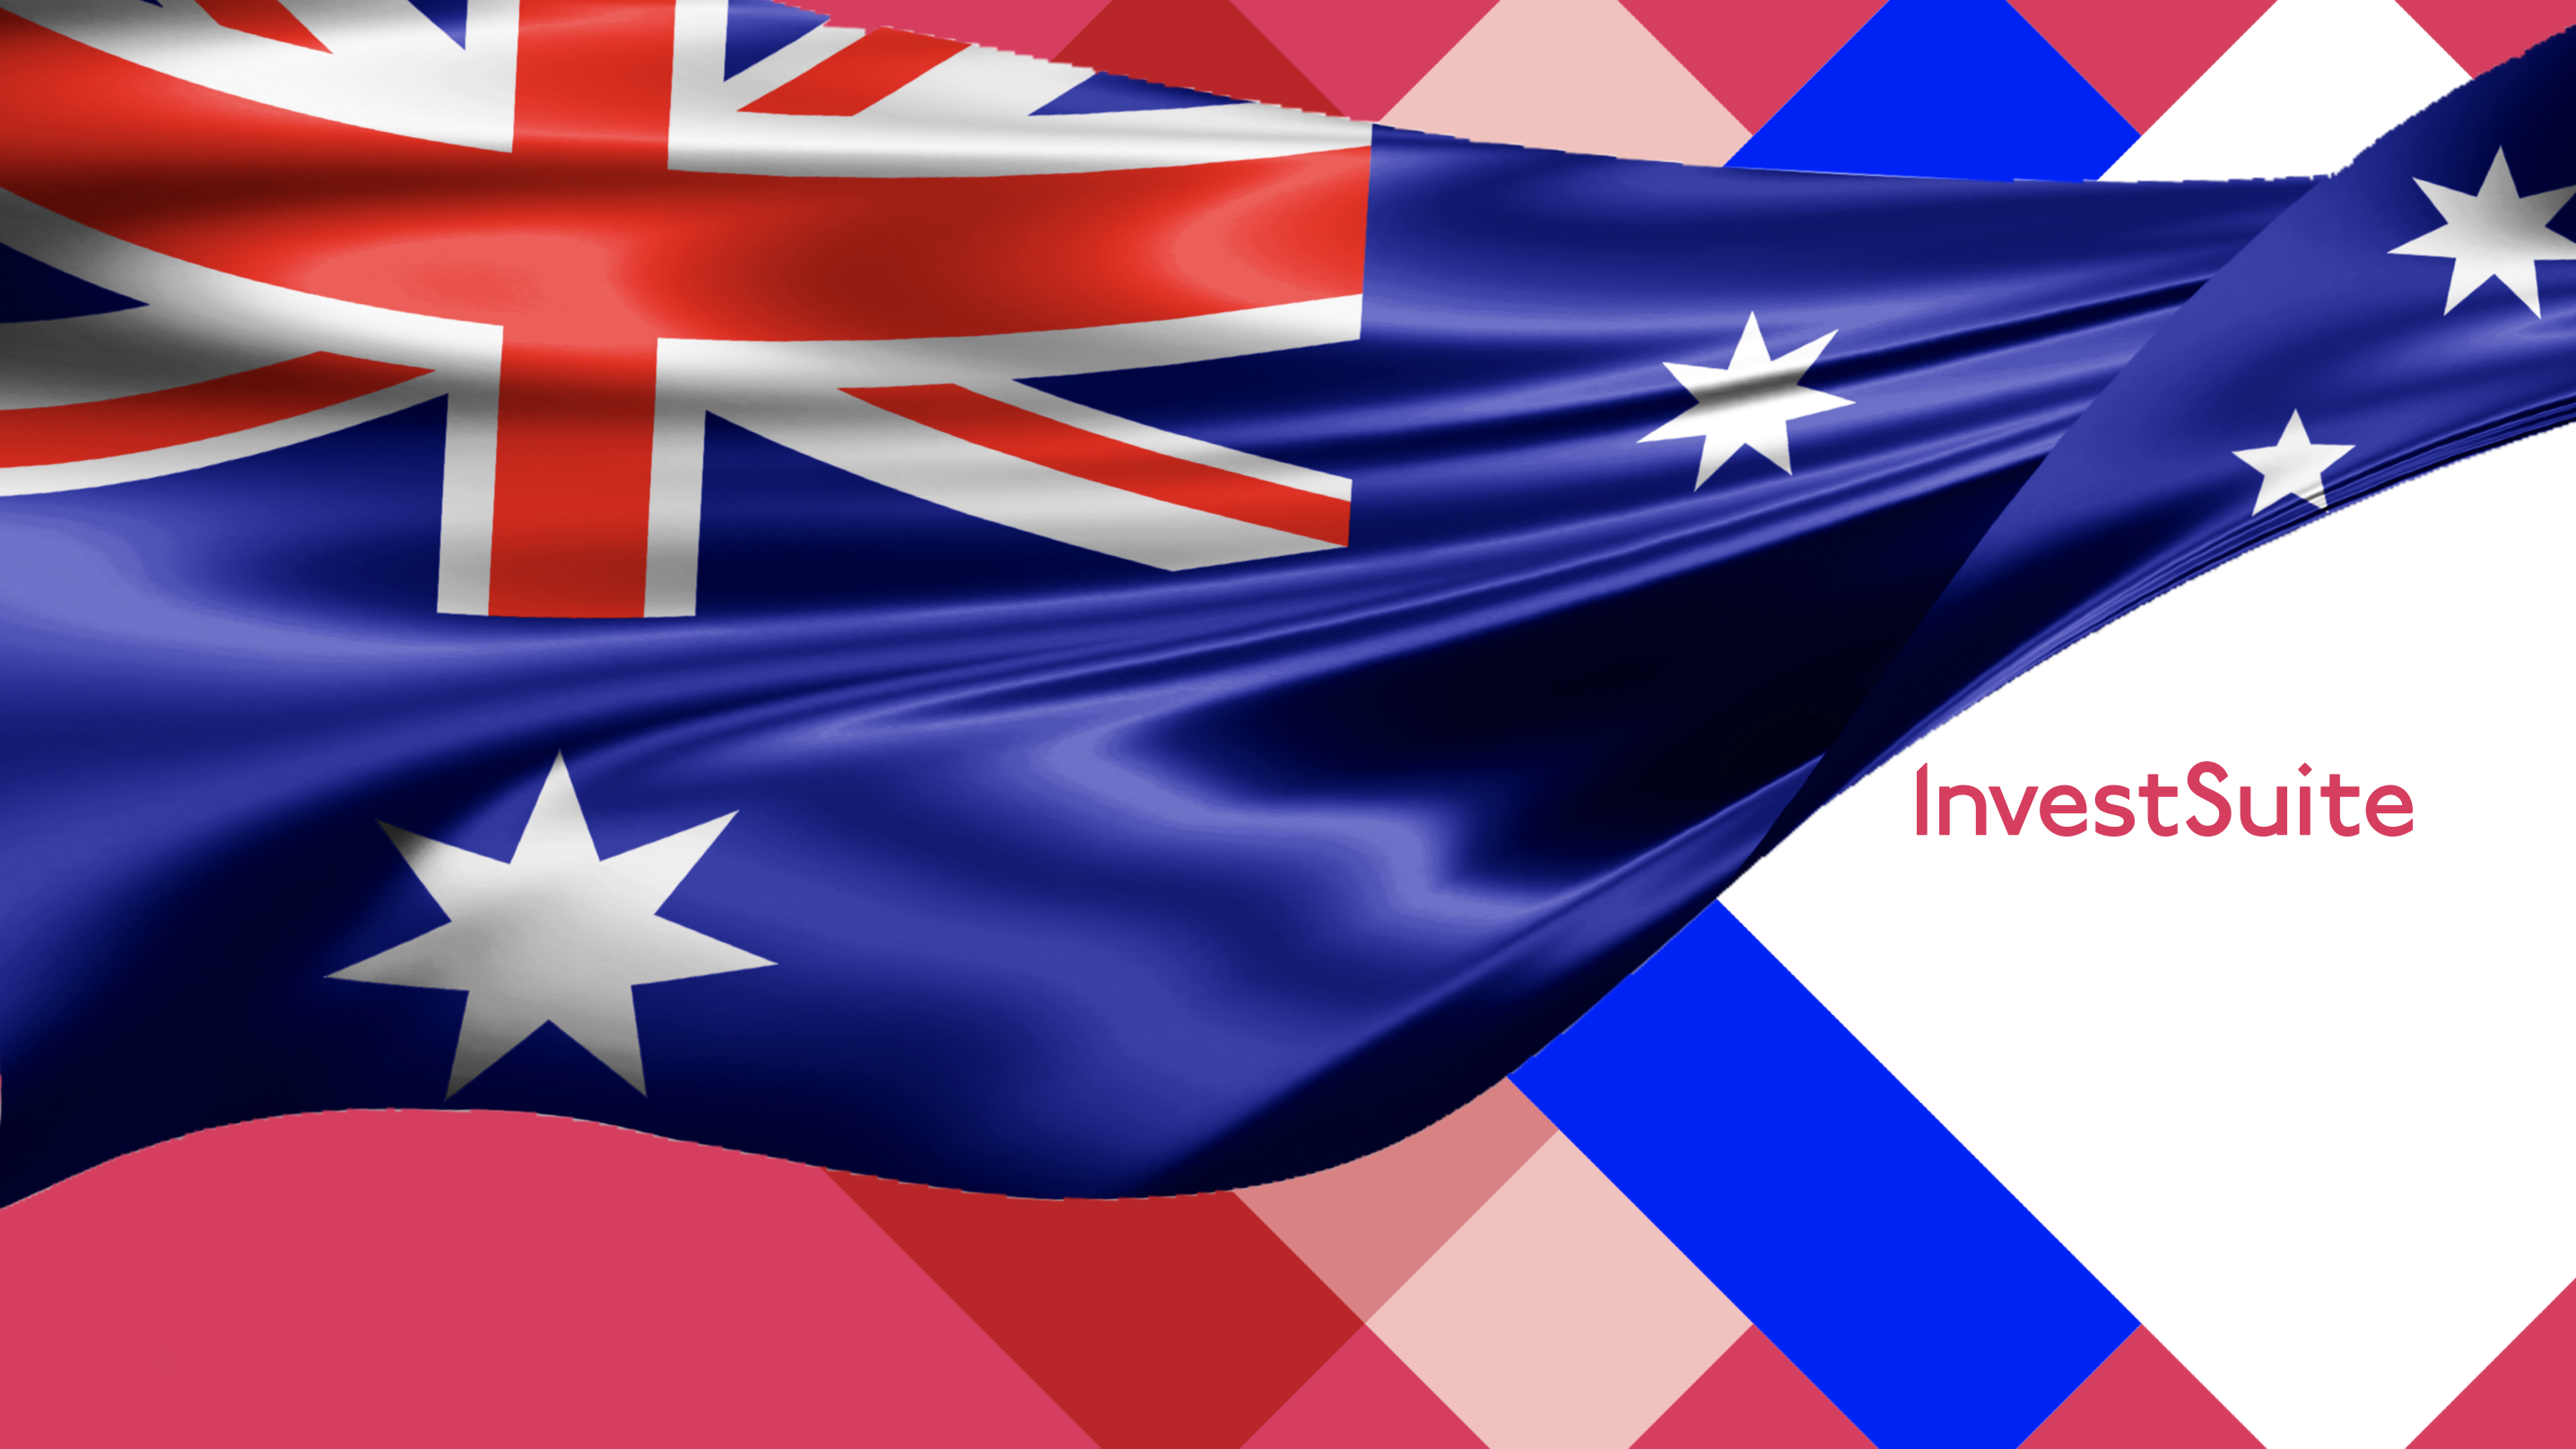 Wealthtech InvestSuite to enter Australia